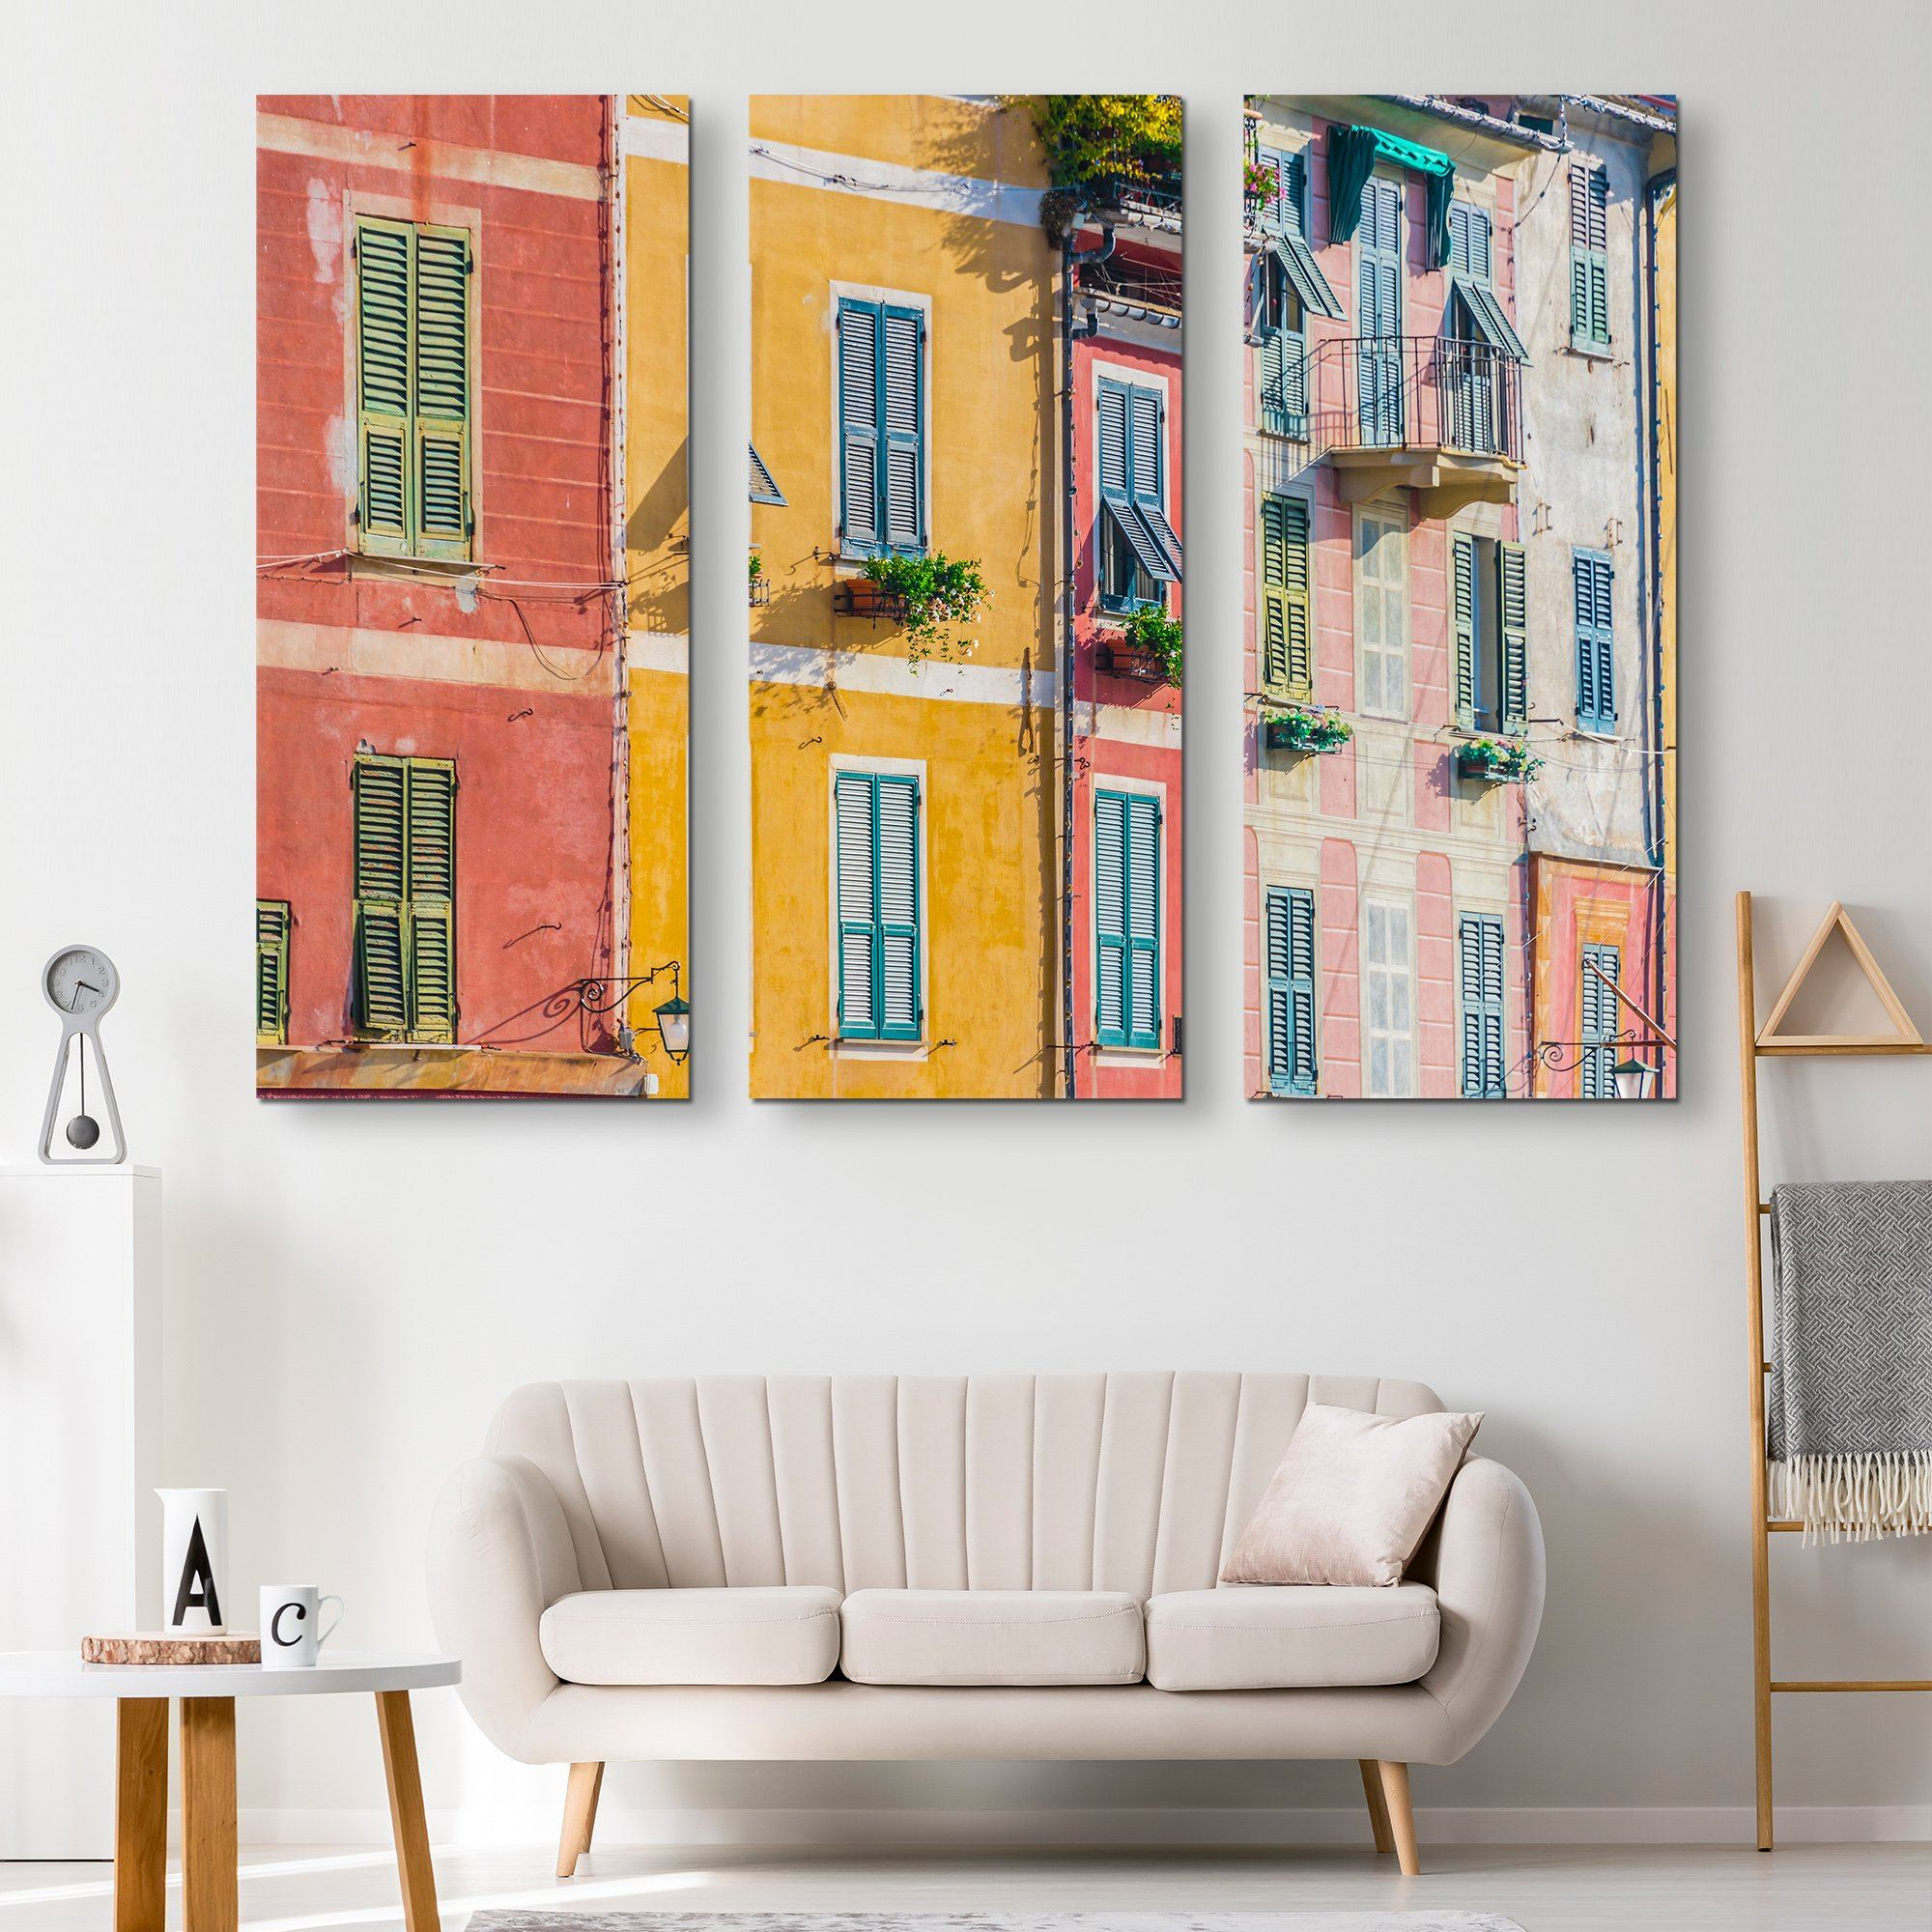 3 piece Architecture in Italy wall art